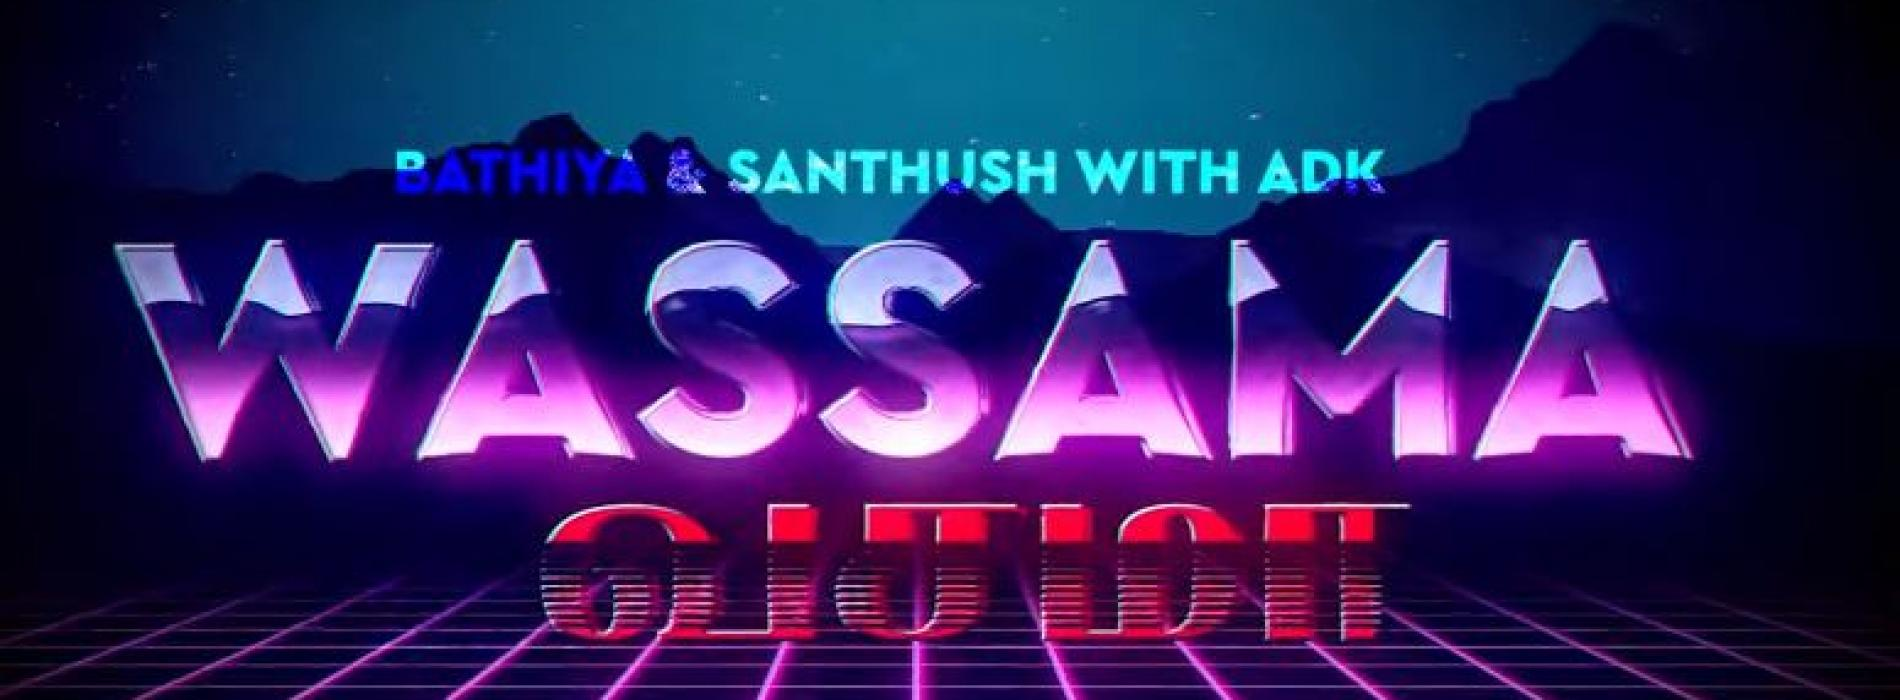 Wassama – Official Music Video | ADK | Bathiya & Santhush (BNS)